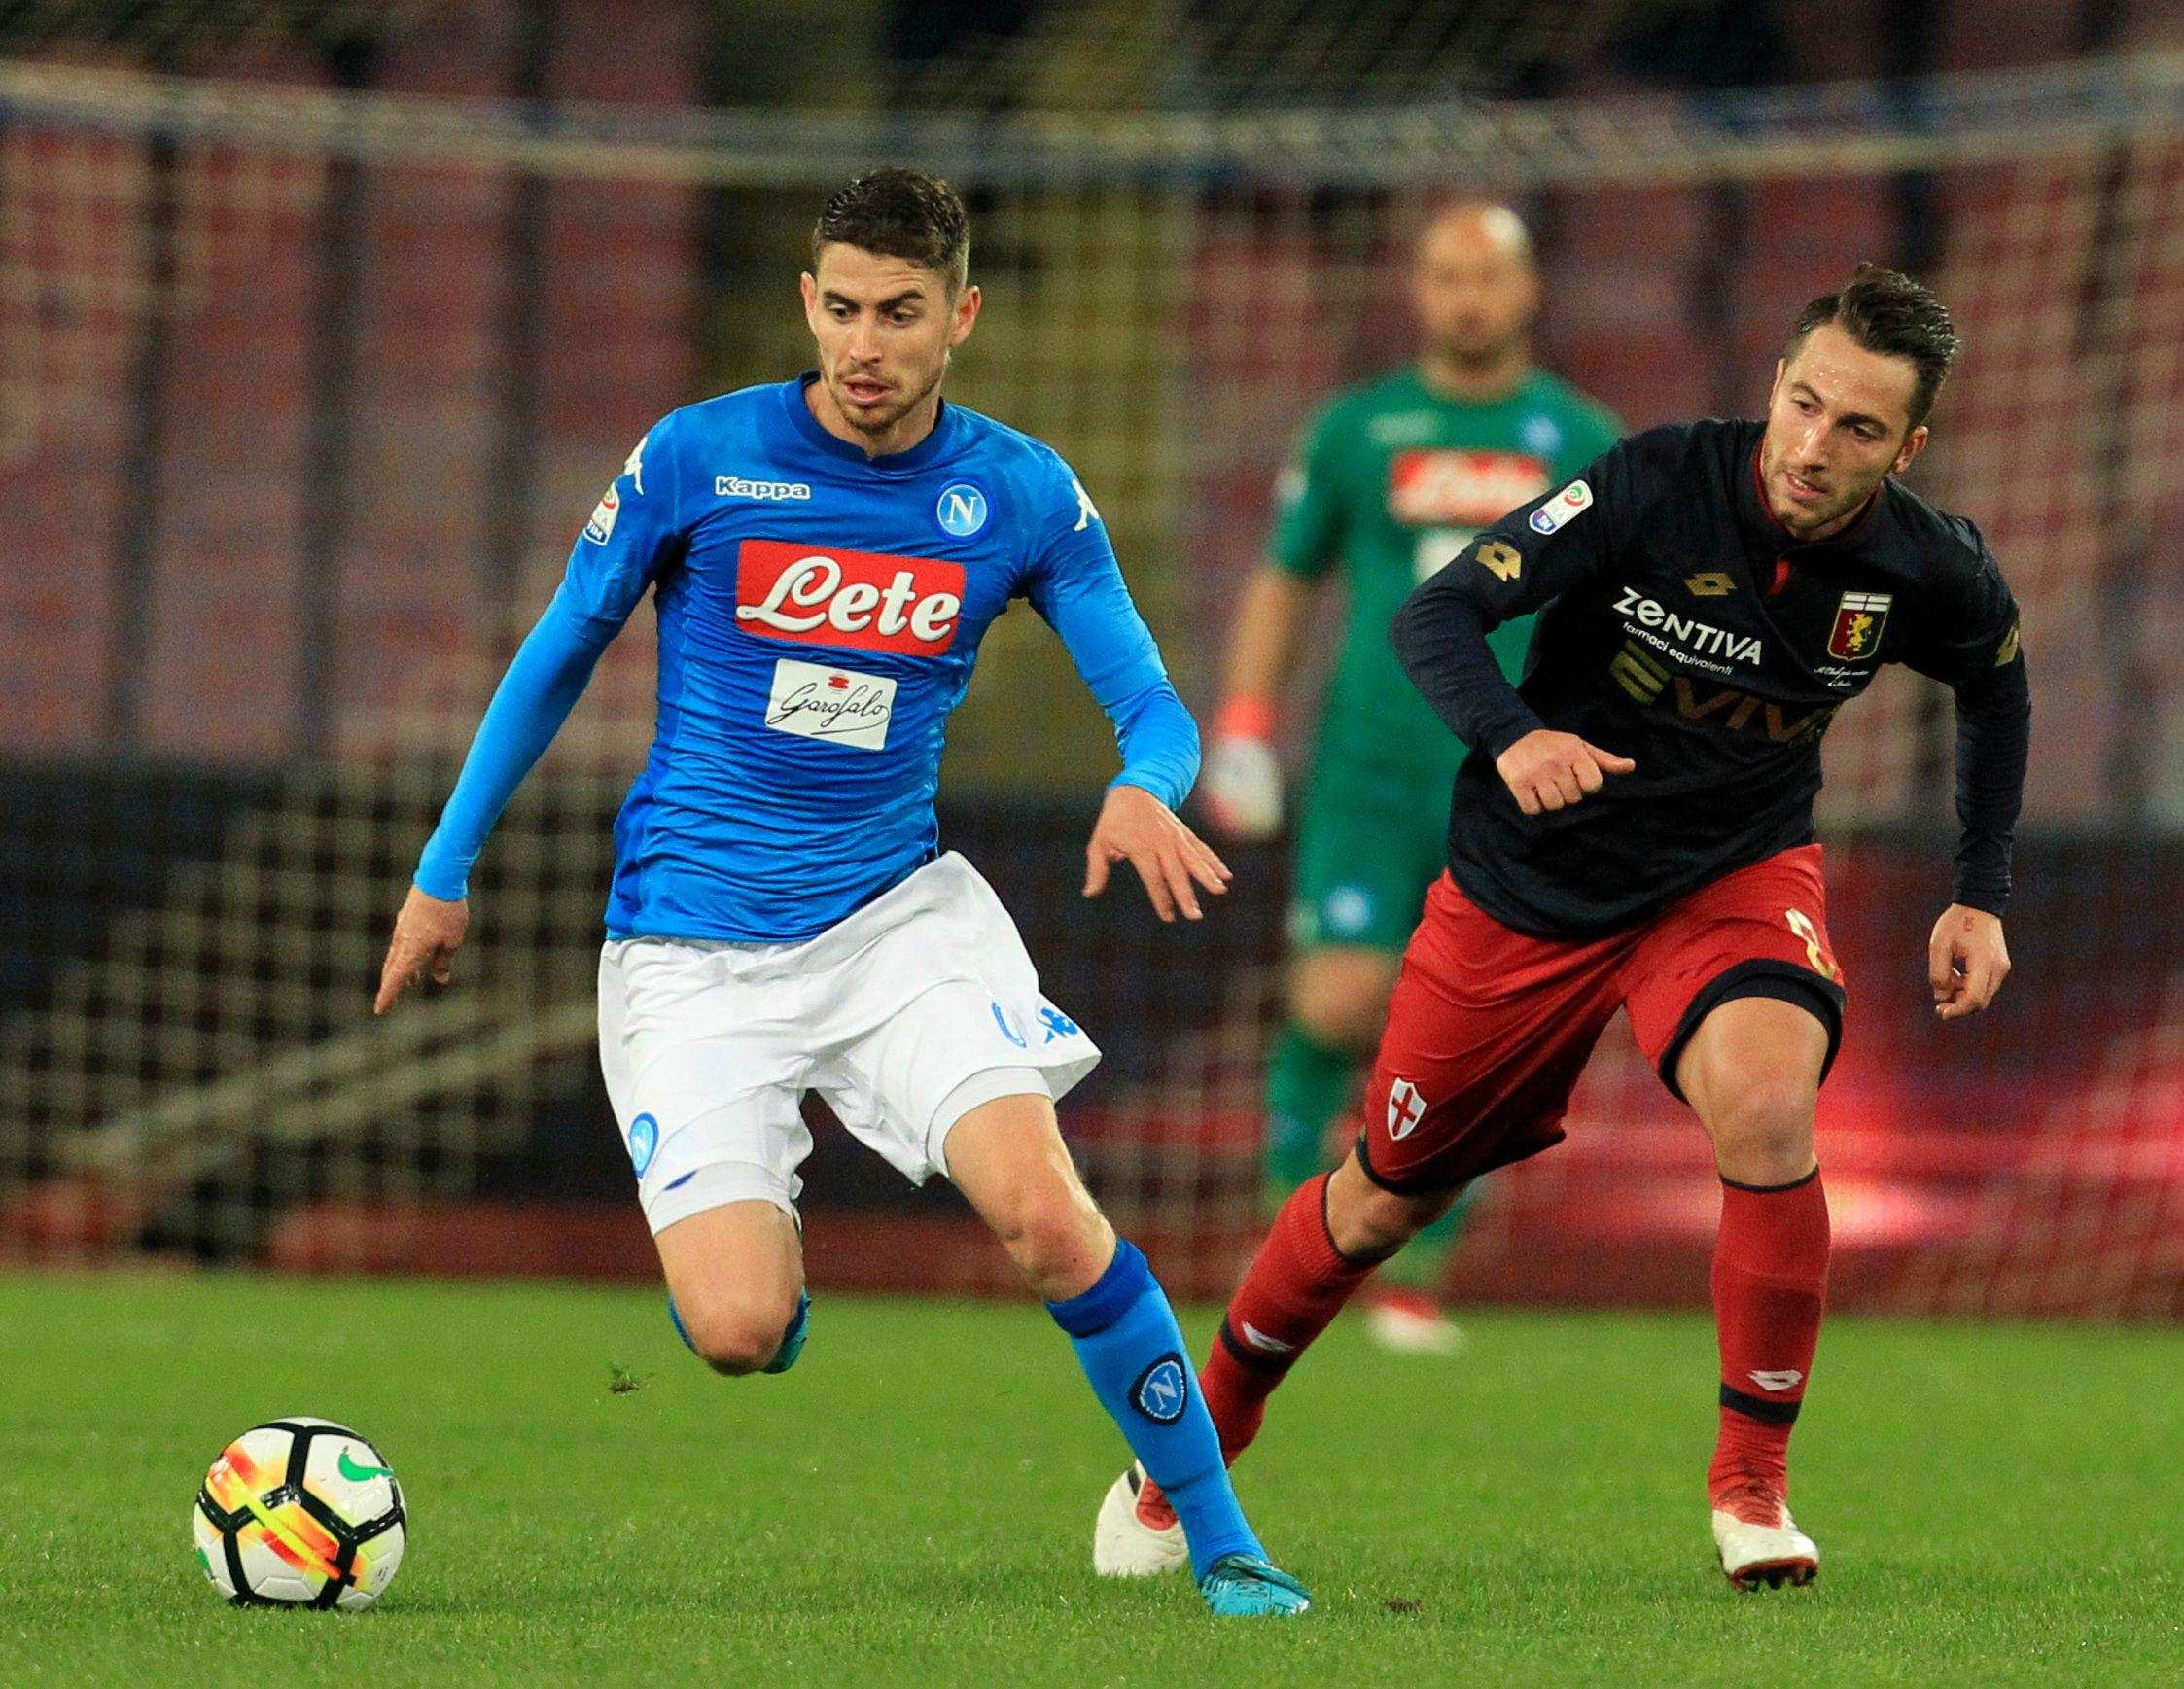 Napoli playmaker Jorginho has echoes of Carrick about his style of play